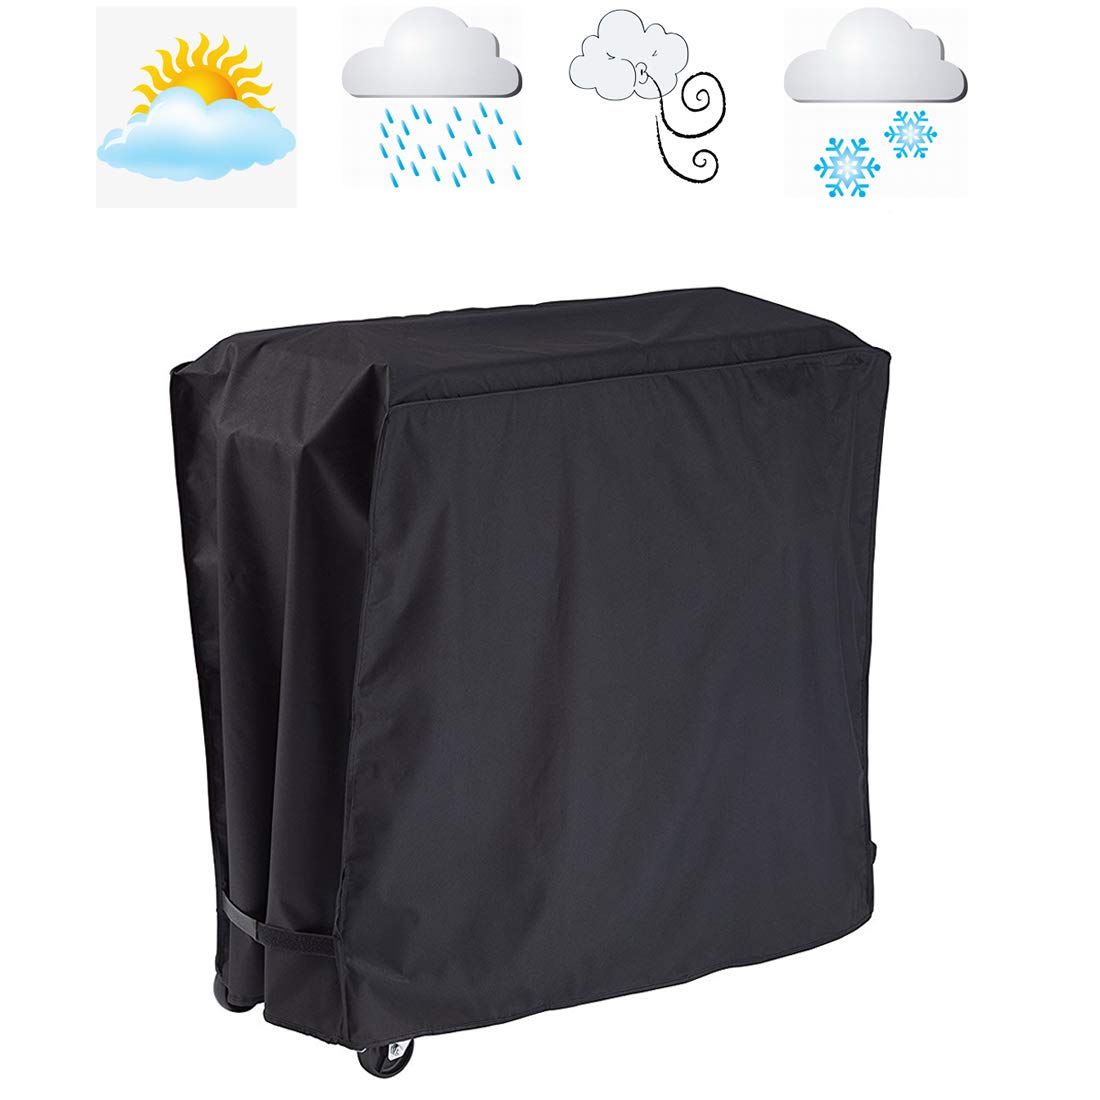 FLR Black Cooler Cover Universal Waterproof Durable Rolling Cooler Patio Cooler Cover Protection Outdoor Beverage Cart Rolling Ice Chest Party Cooler by FLR